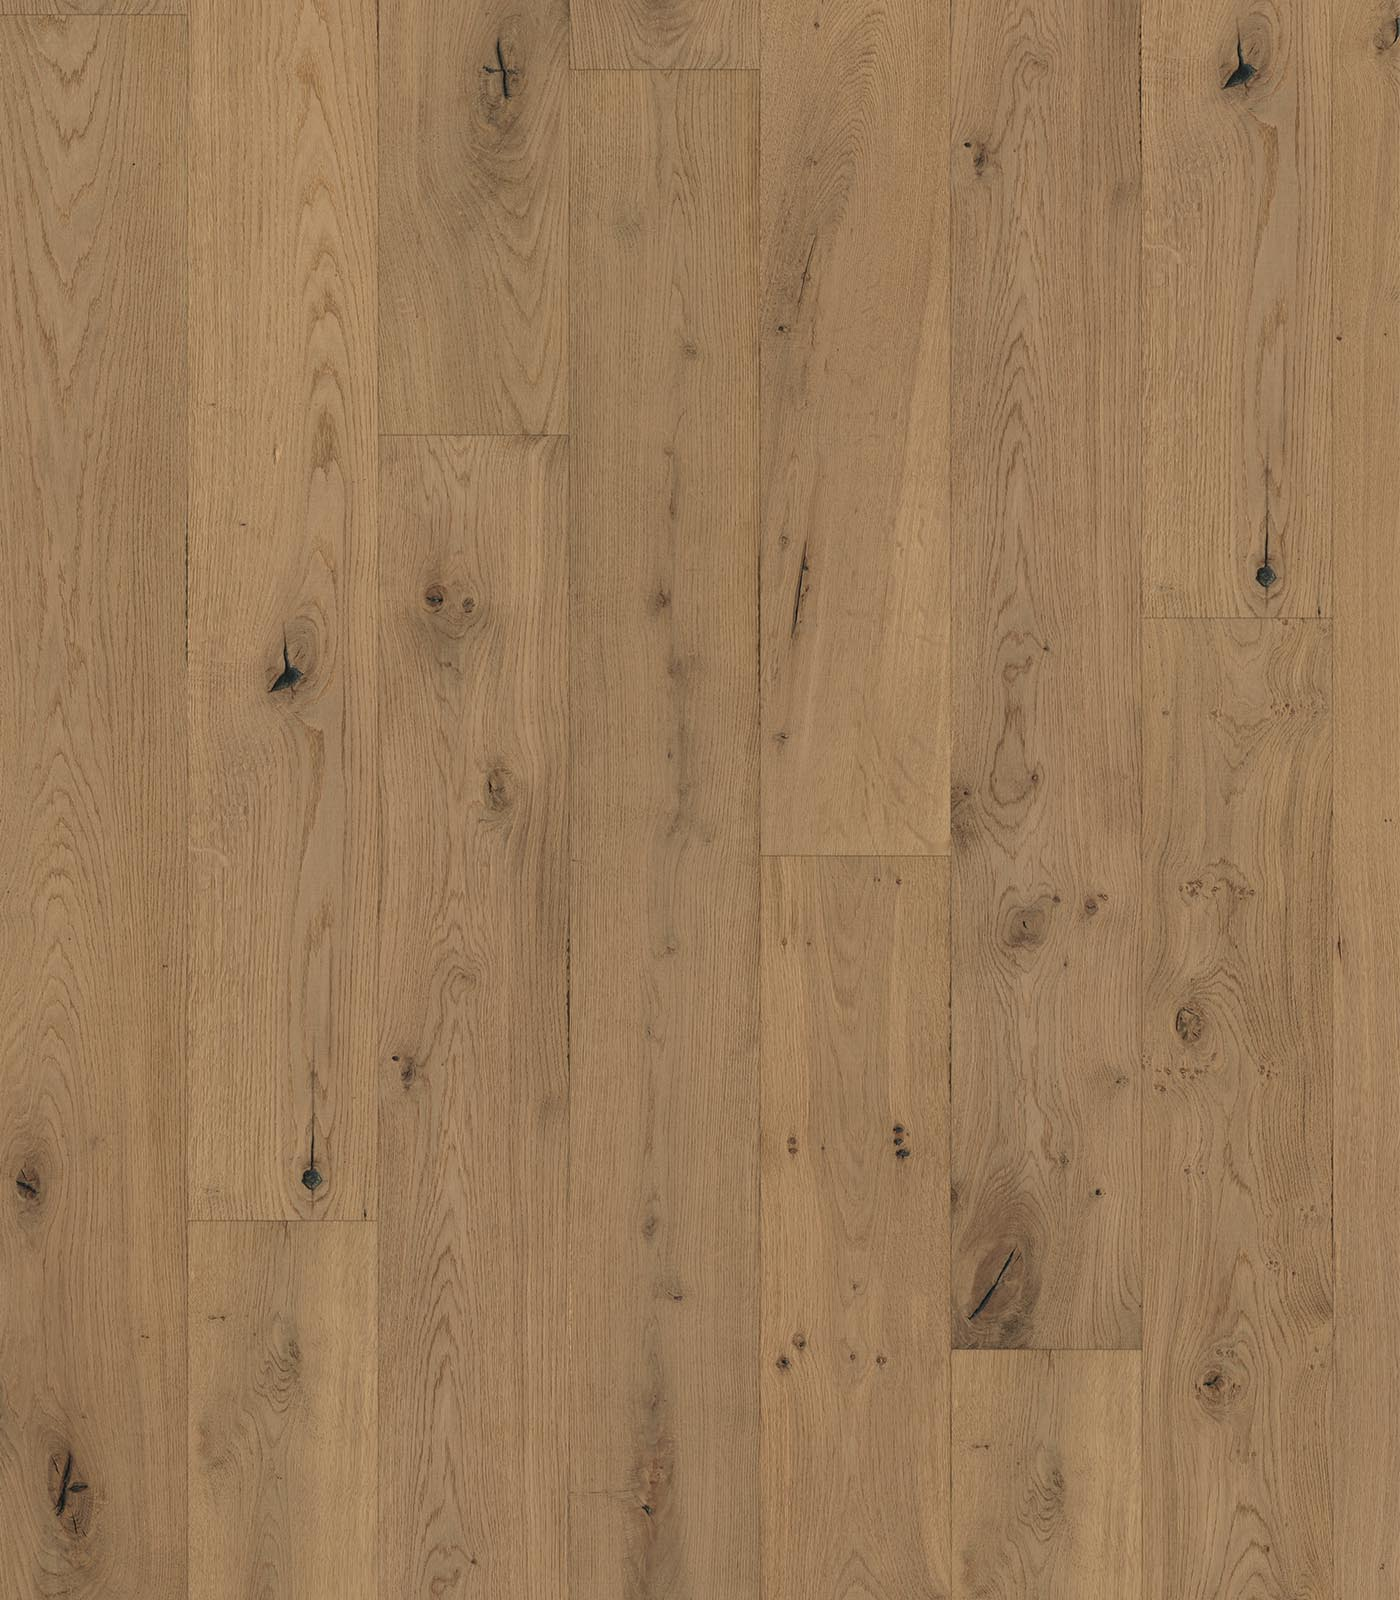 Westminster-European Oak Floors-Heritage Collection-flat